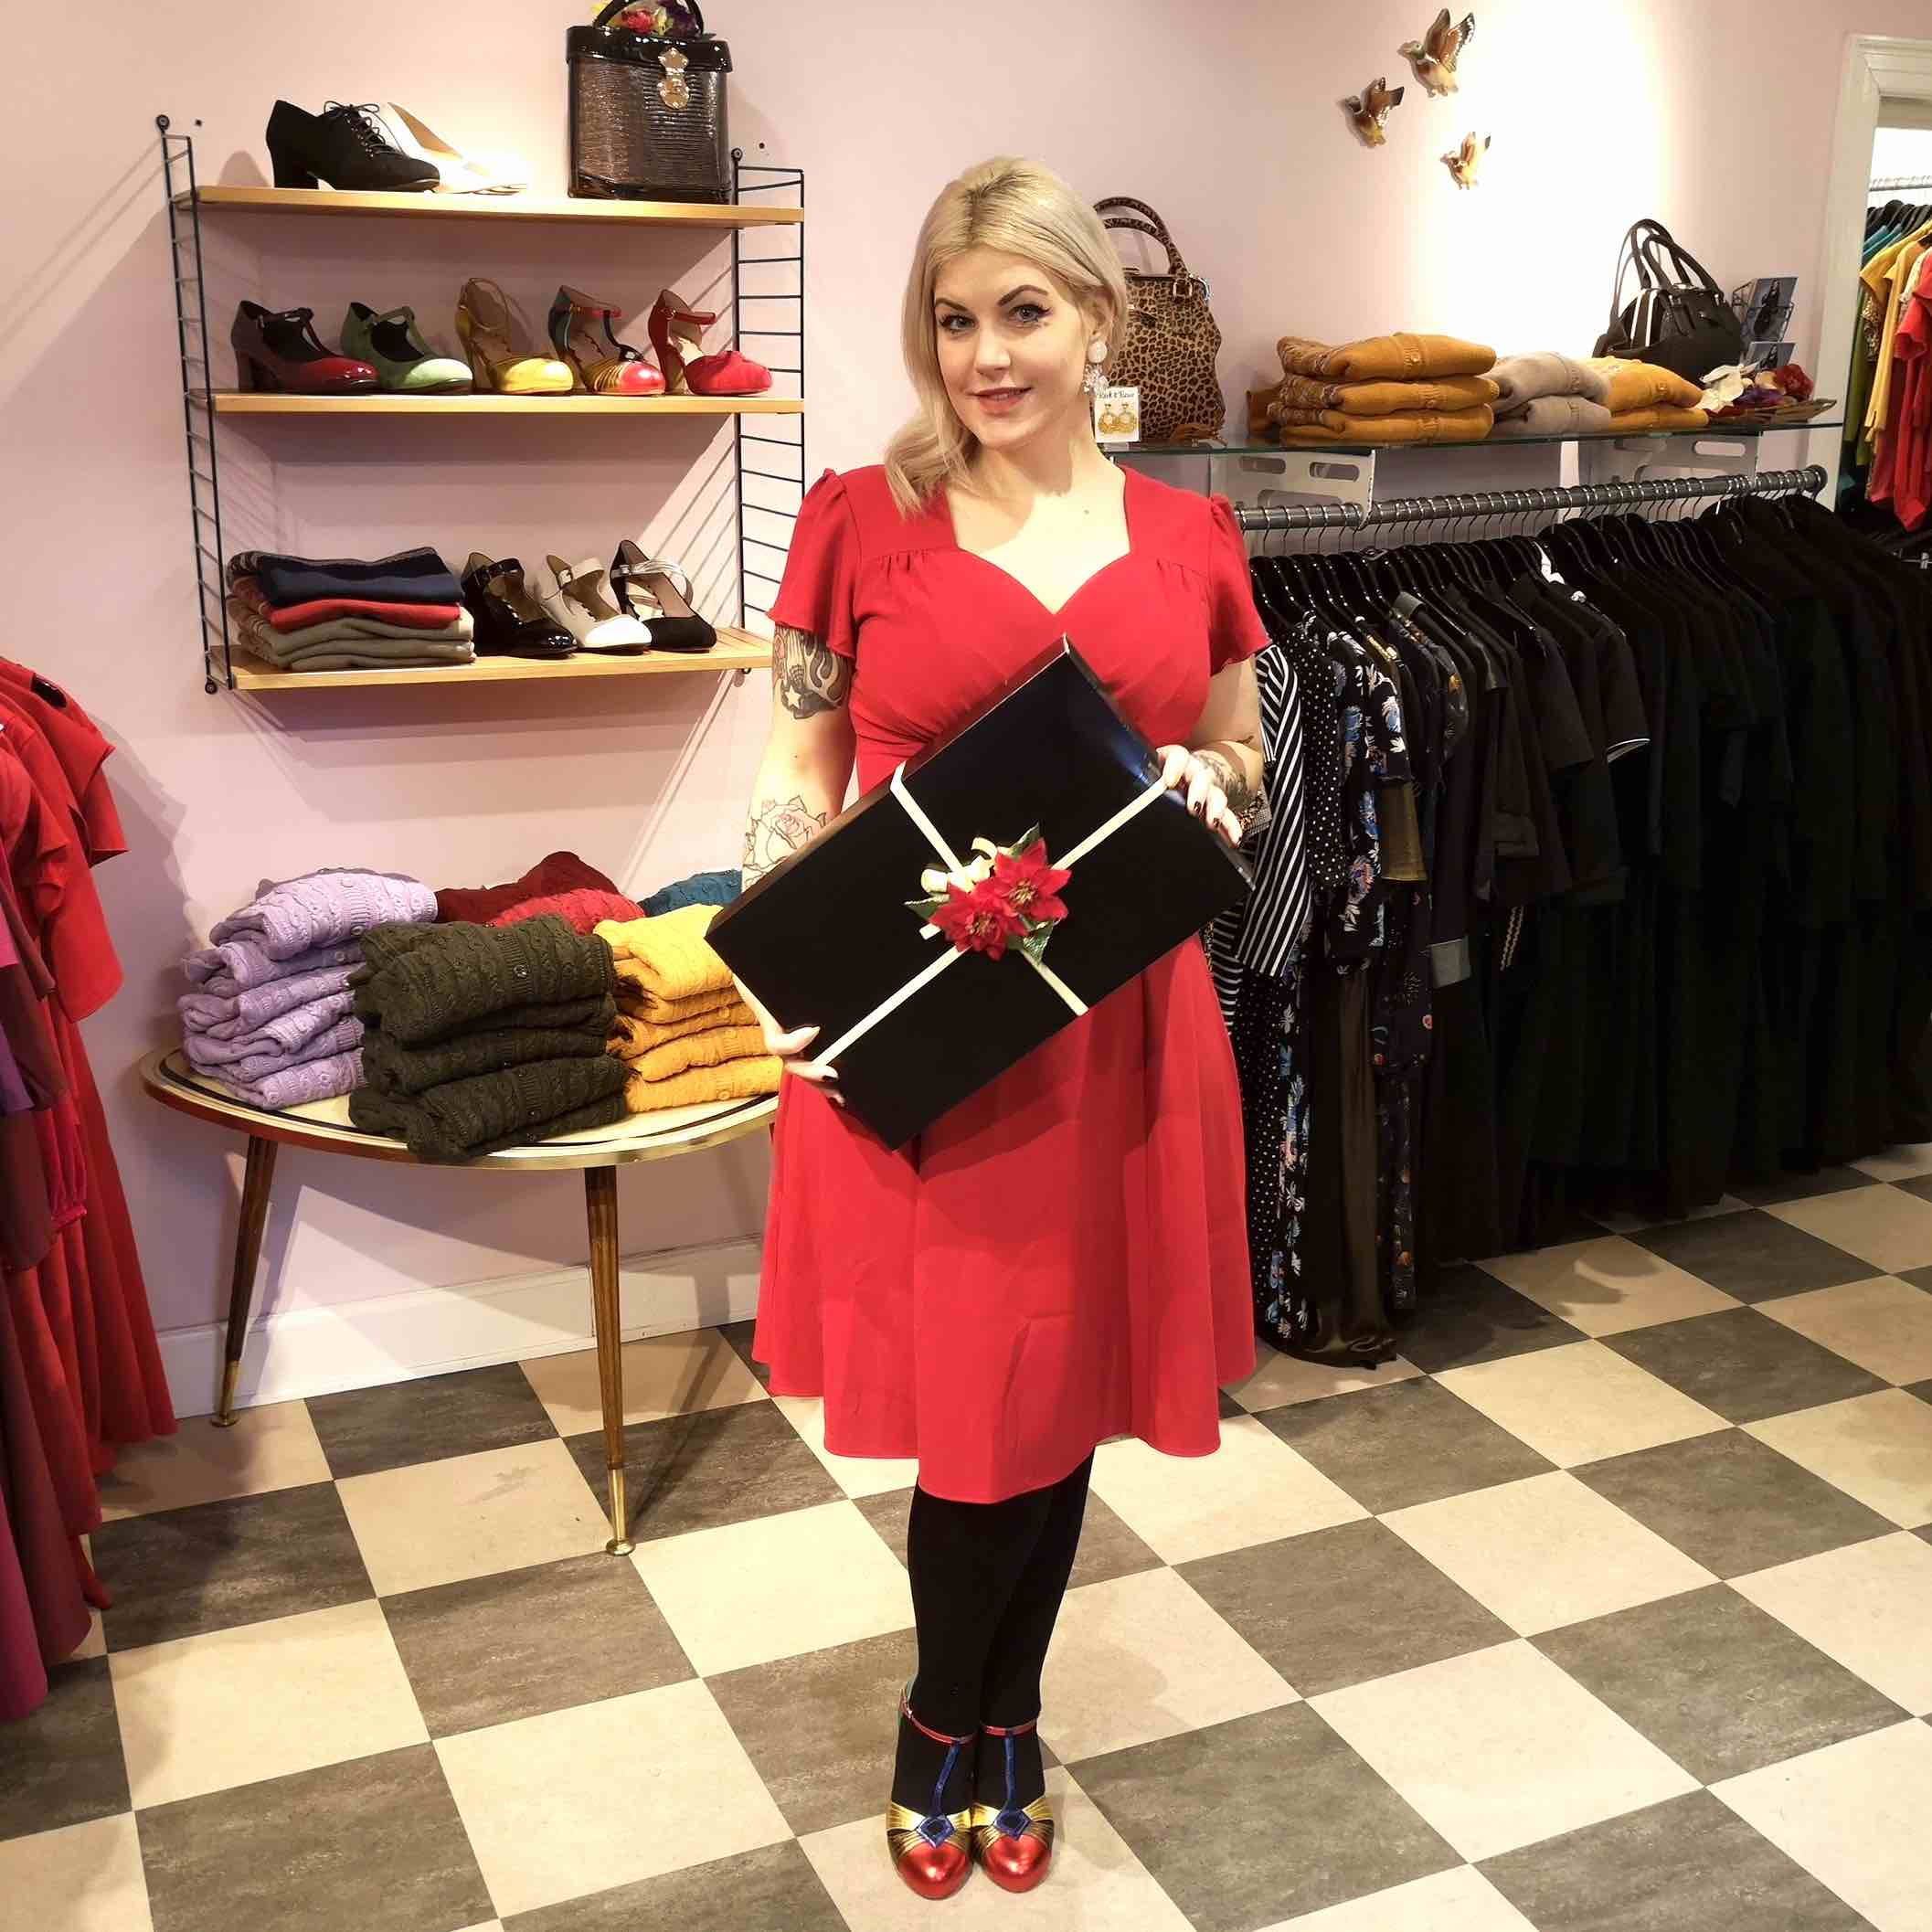 Christmas dresses in vintage style from Mondo Kaos